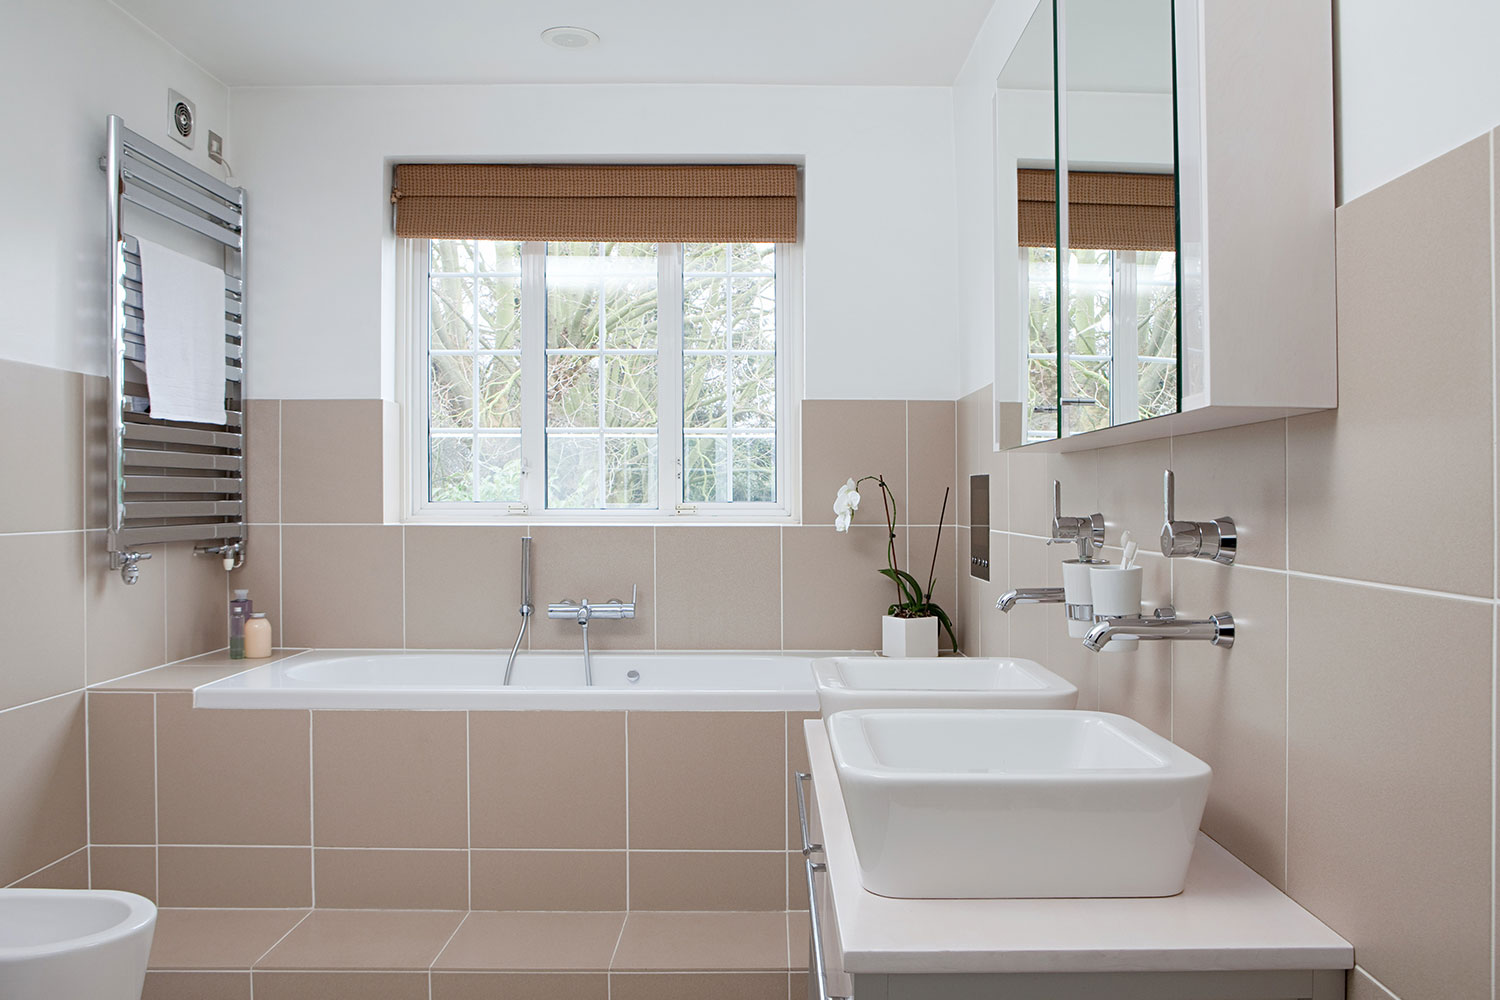 8 Things To Consider When Remodeling A Master Bathroom